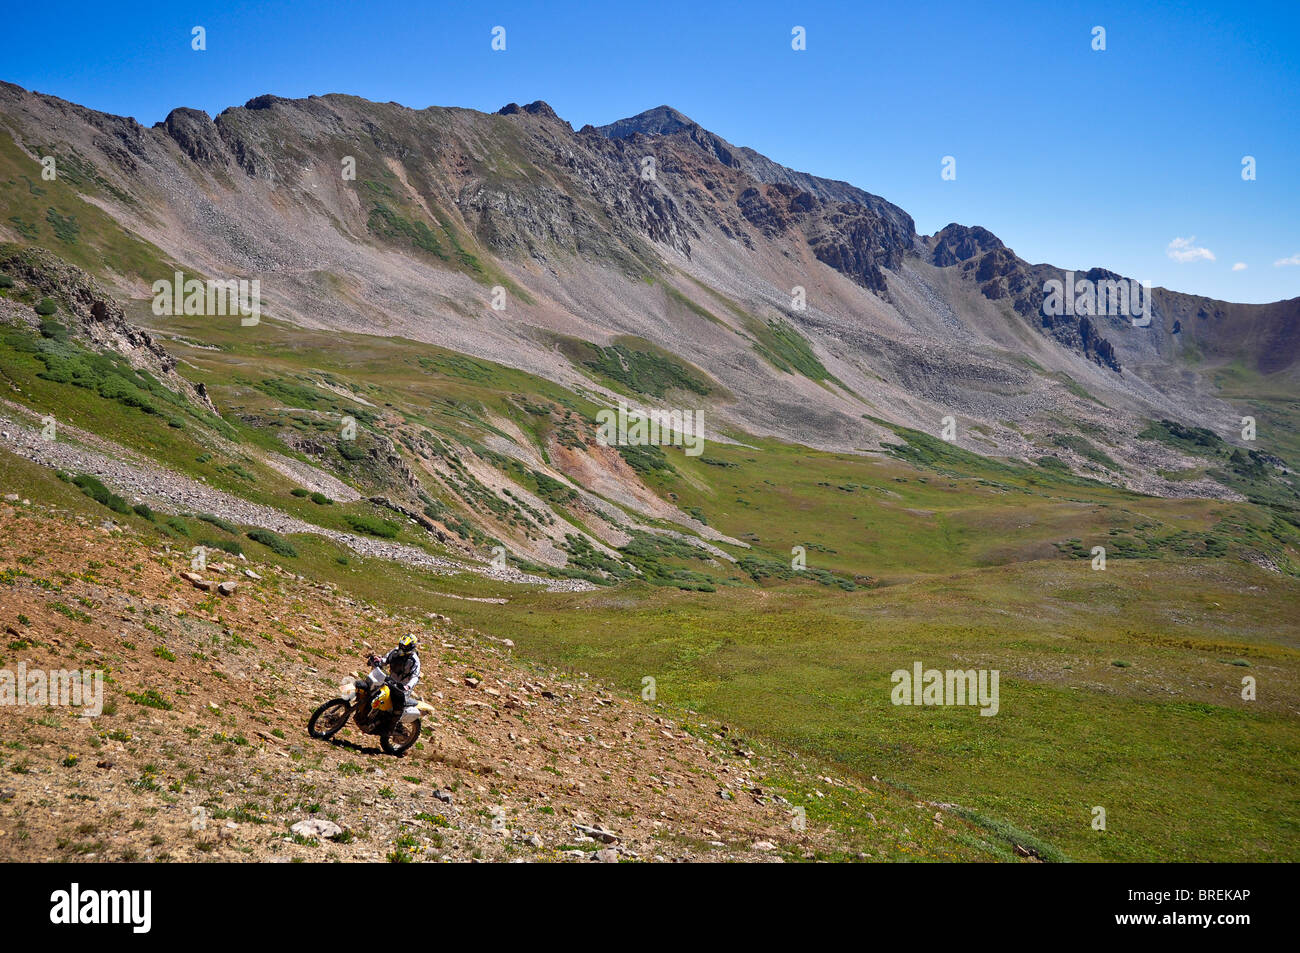 offroad motorcycle rider, Pearl Pass, Crested Butte, Colorado, USA - Stock Image